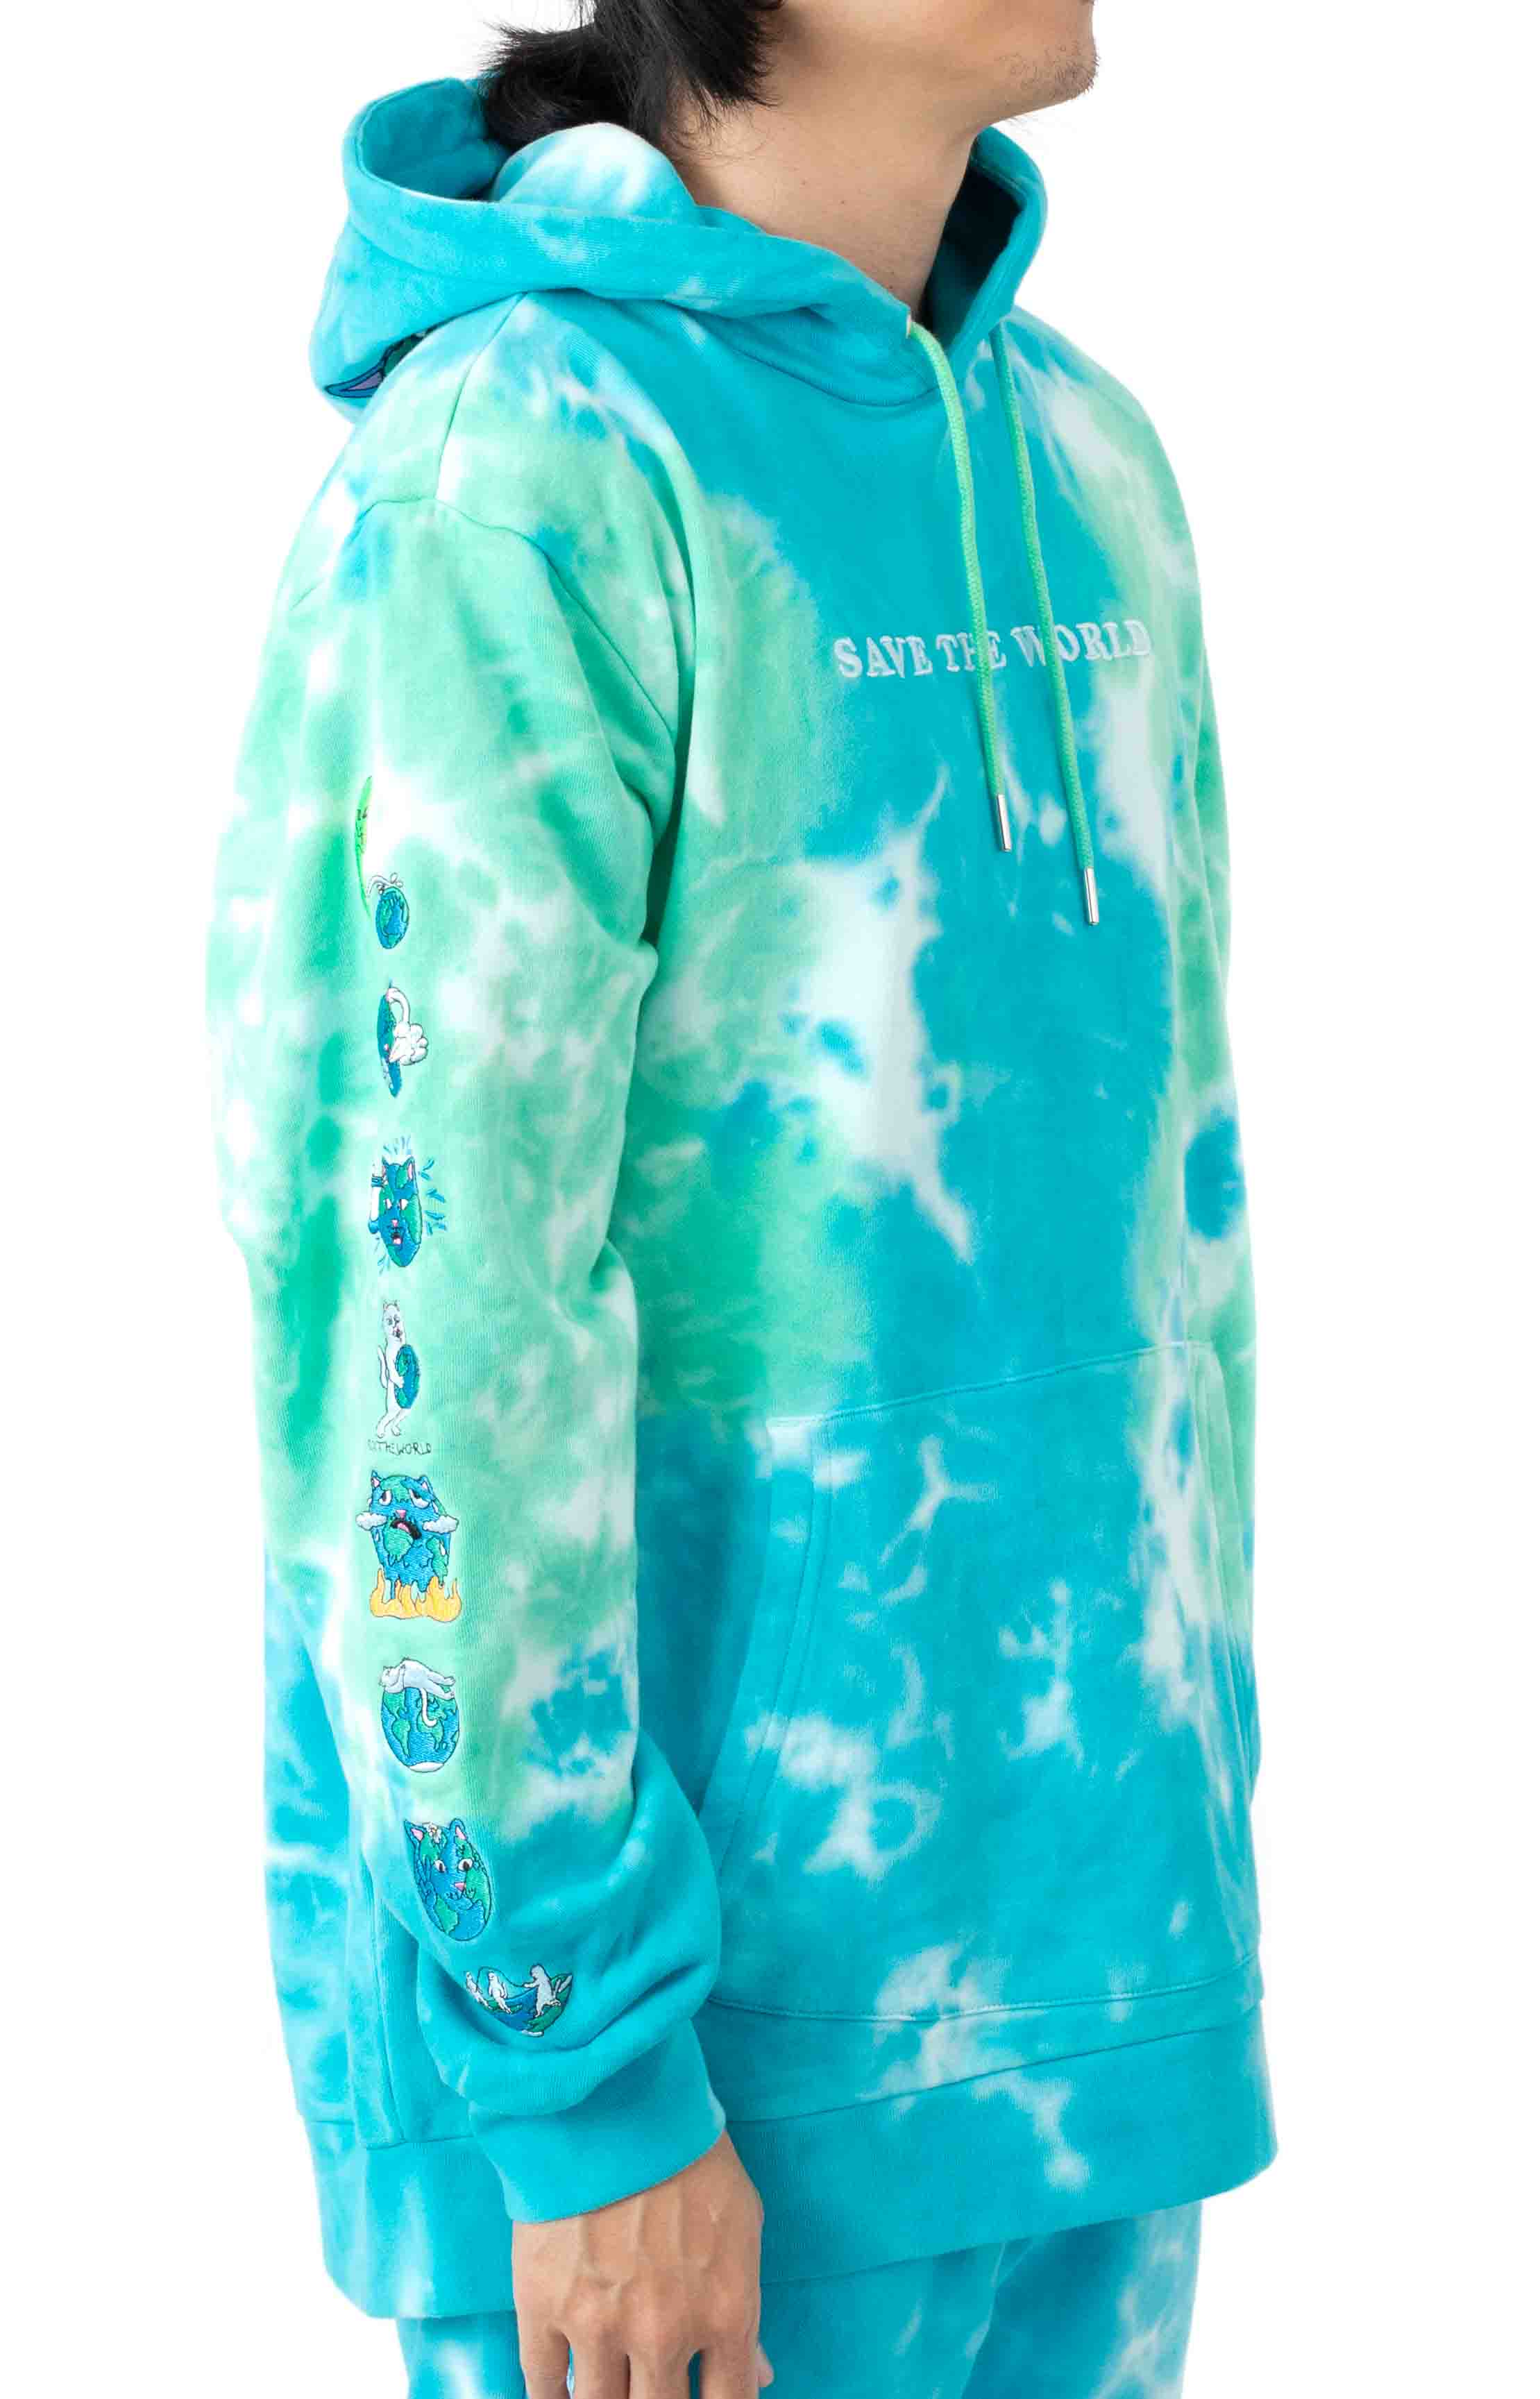 Save The World Embroidered Pullover Hoodie - Aqua/Green Tie-Dye 4